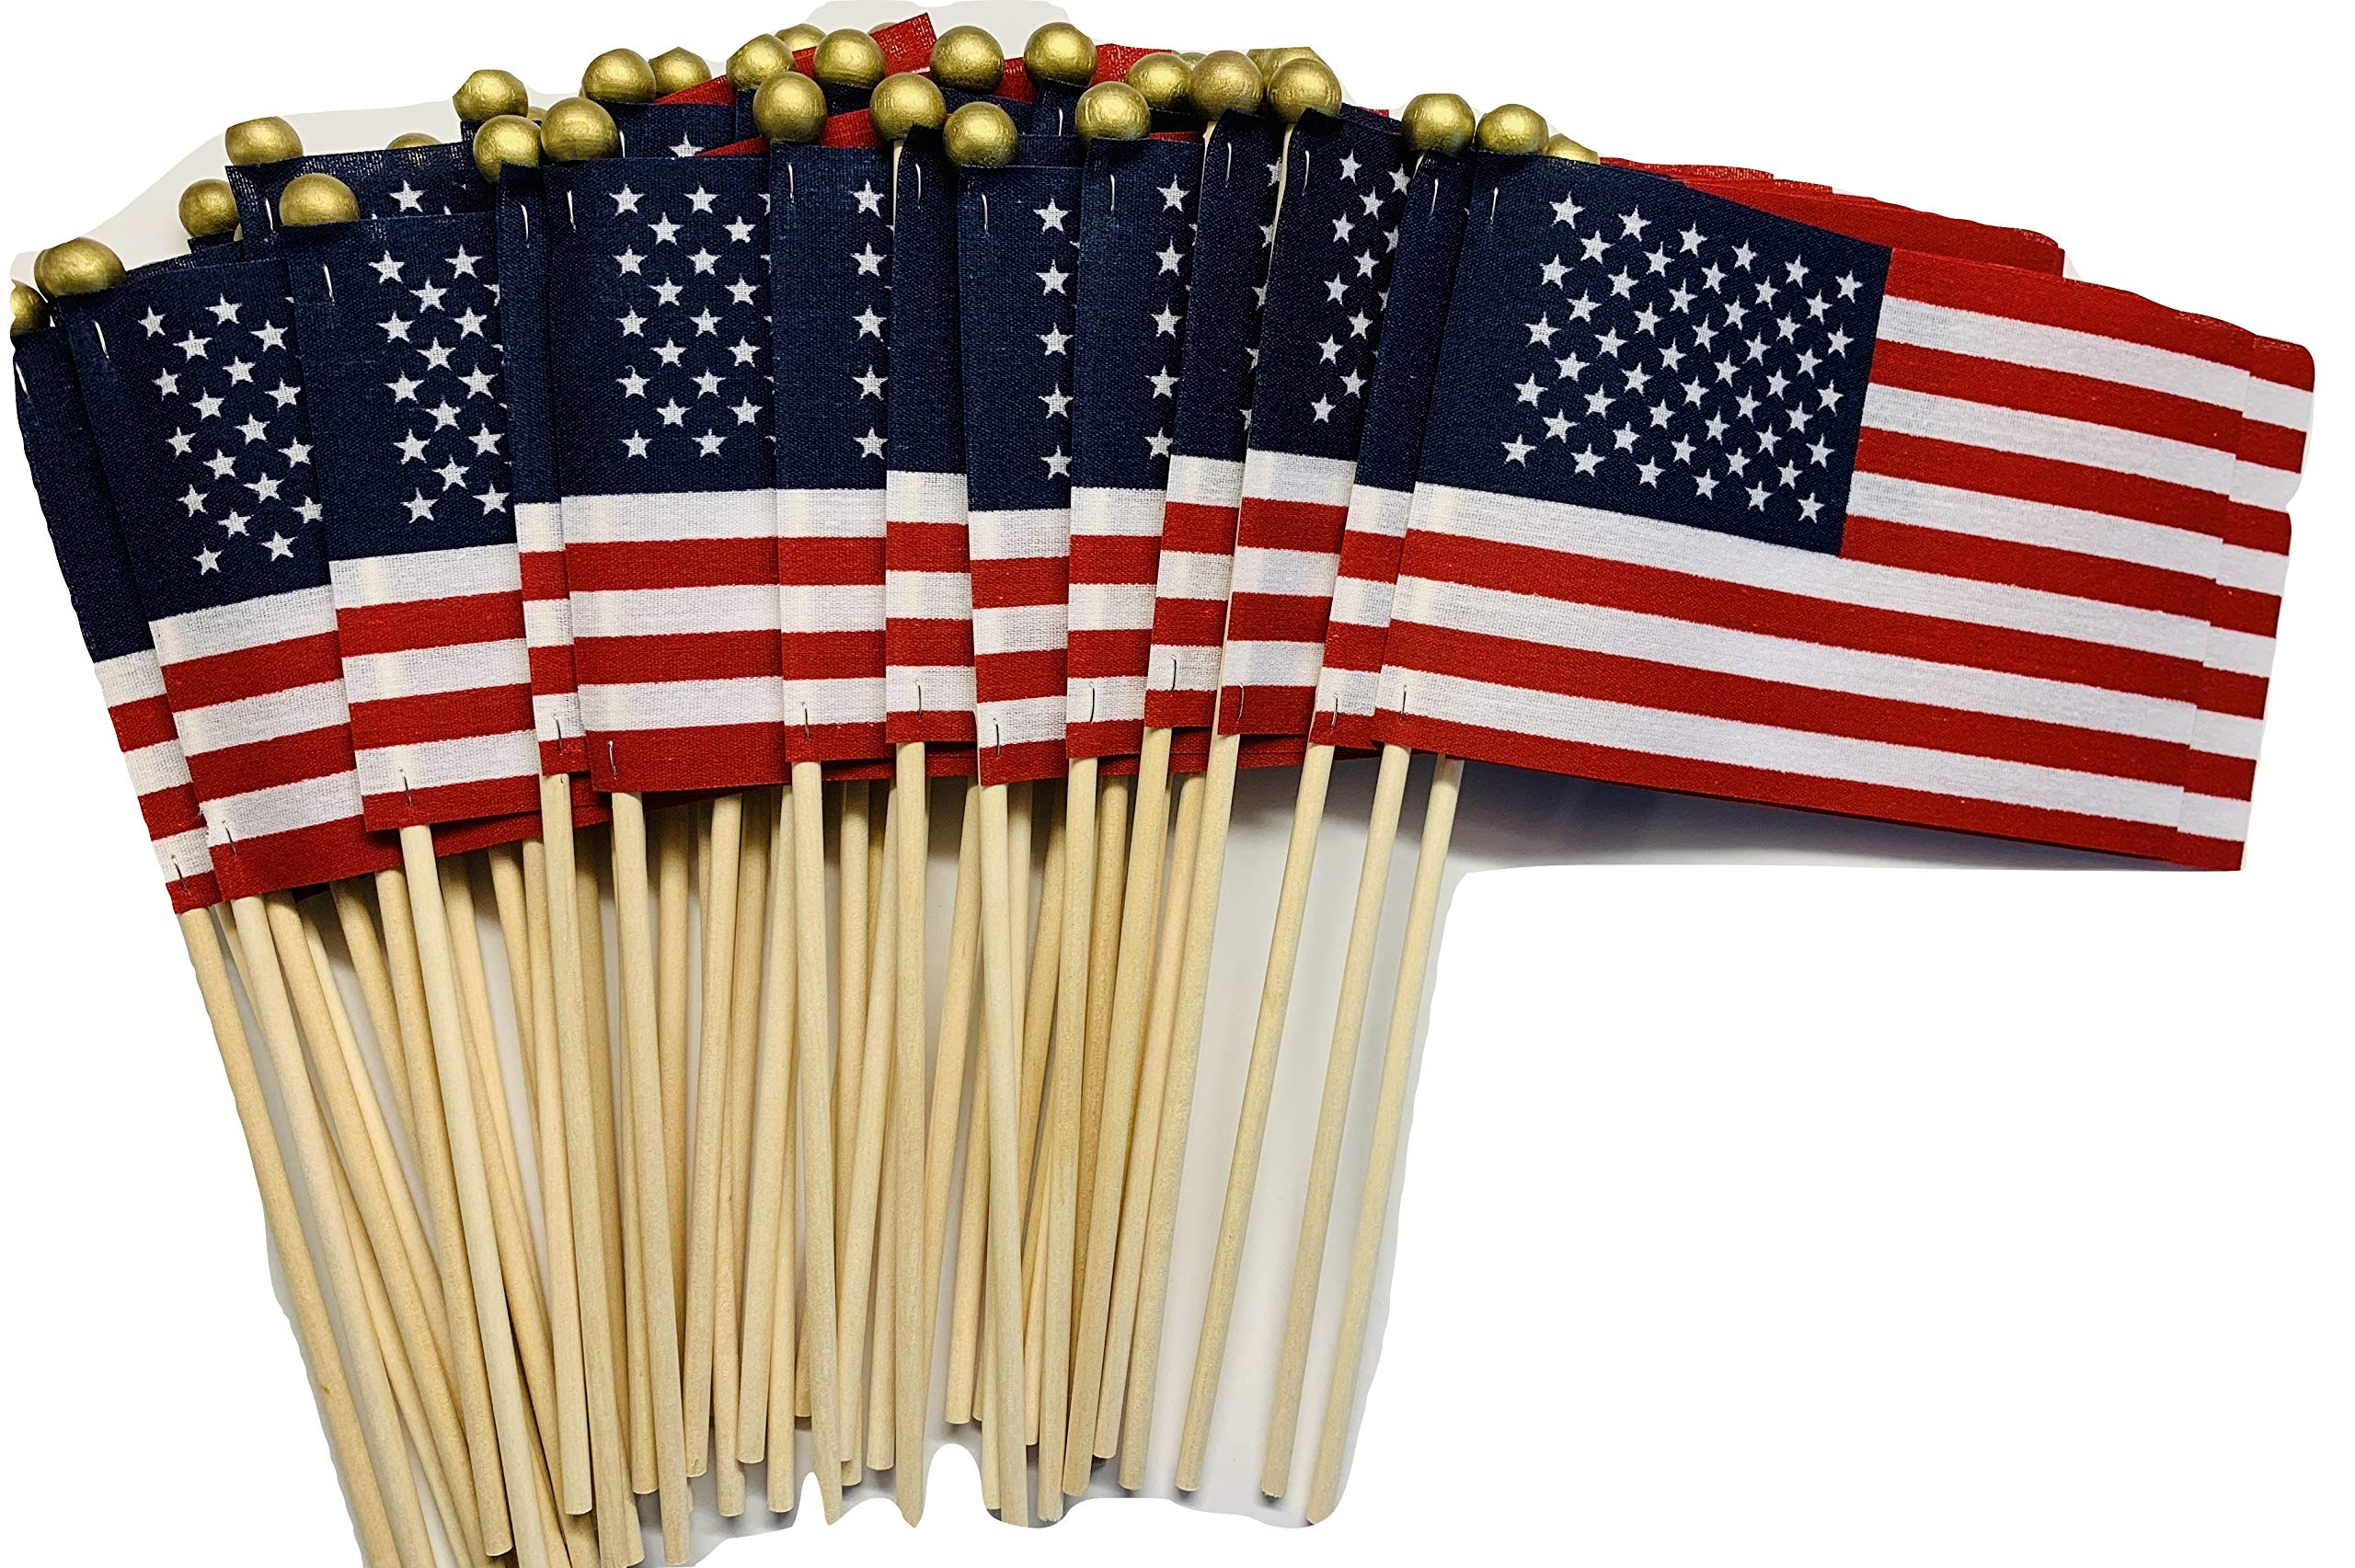 Lot of -50-4x6 Inch US American Hand Held Stick Flags Safety Ball Top on 10 Inch Dowel for Schools and Business WindStrong Made in The USA by WINDSTRONG